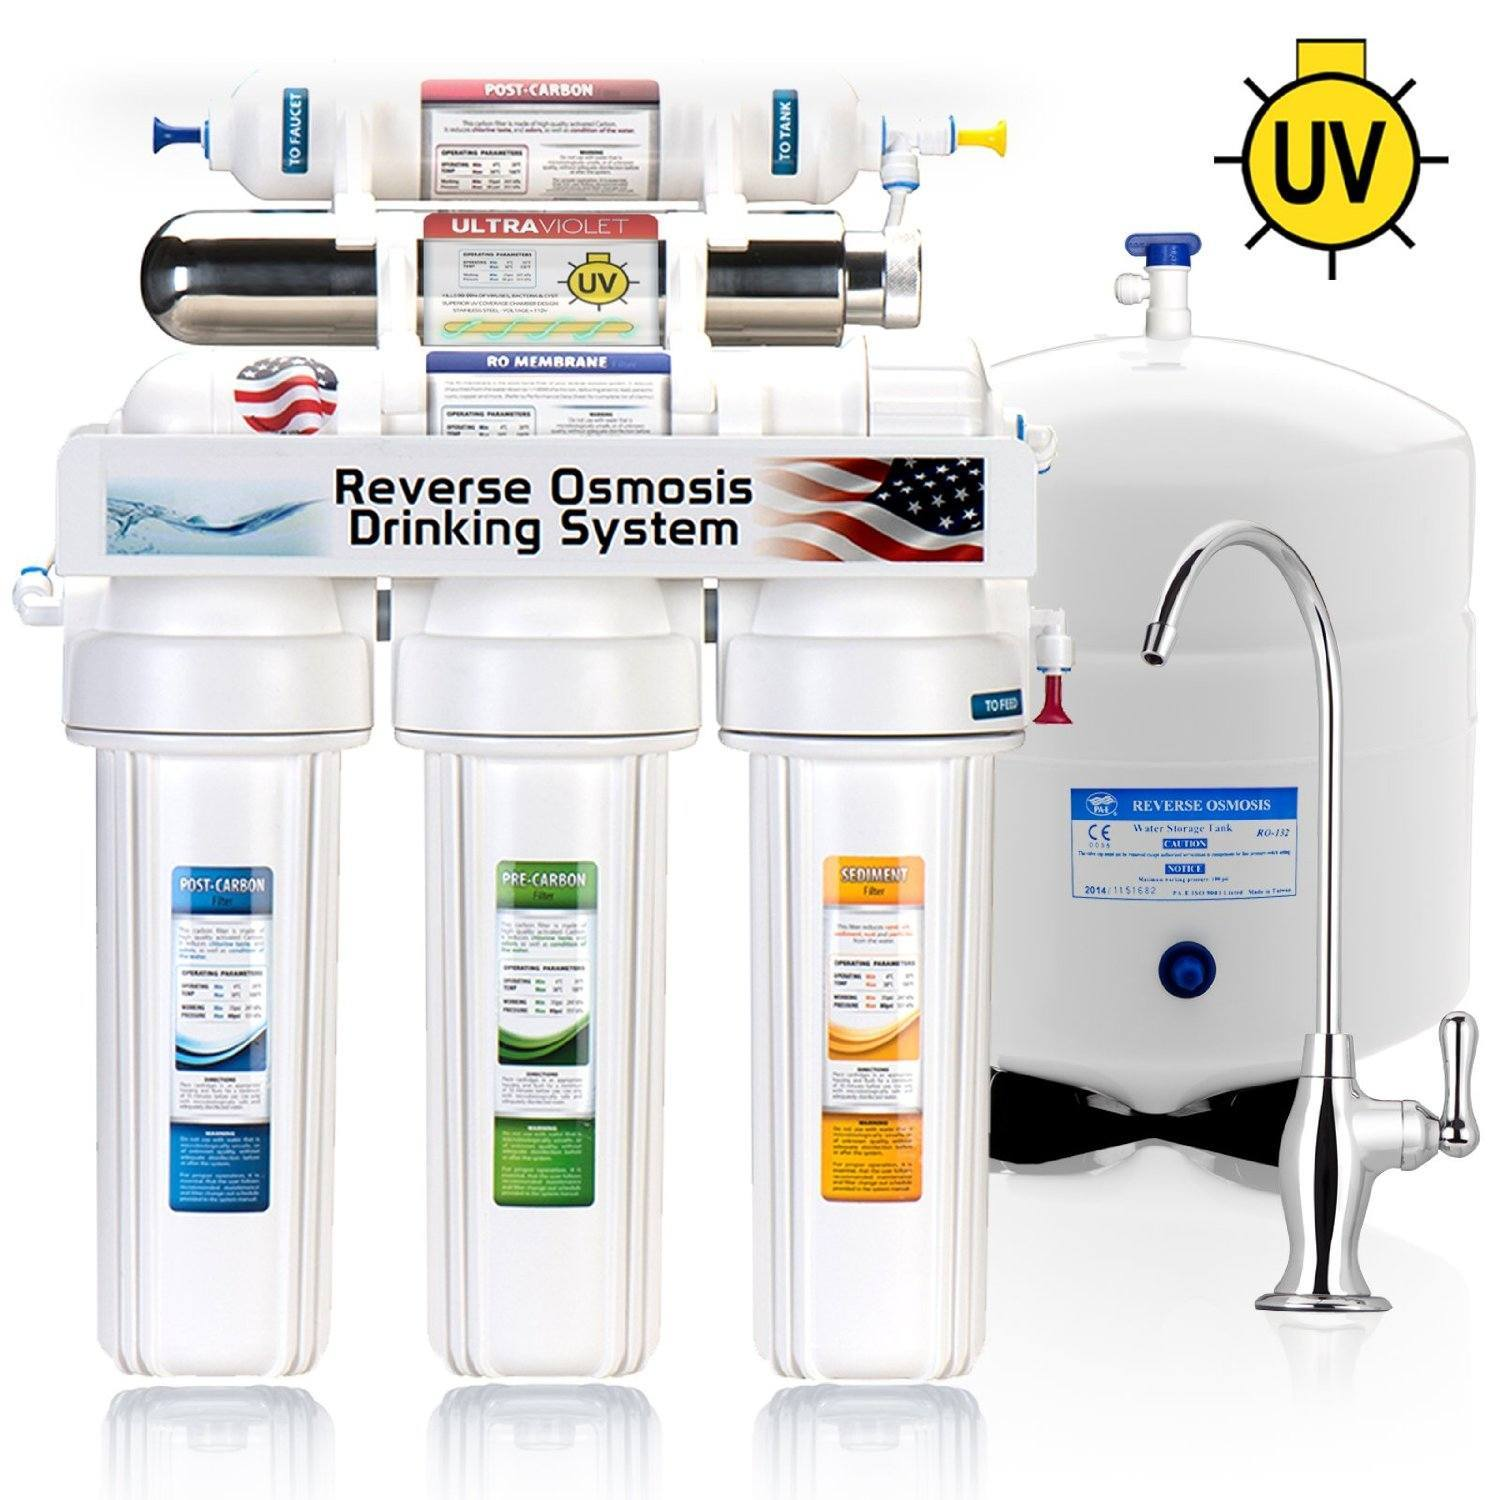 Reverse Osmosis system with faucet